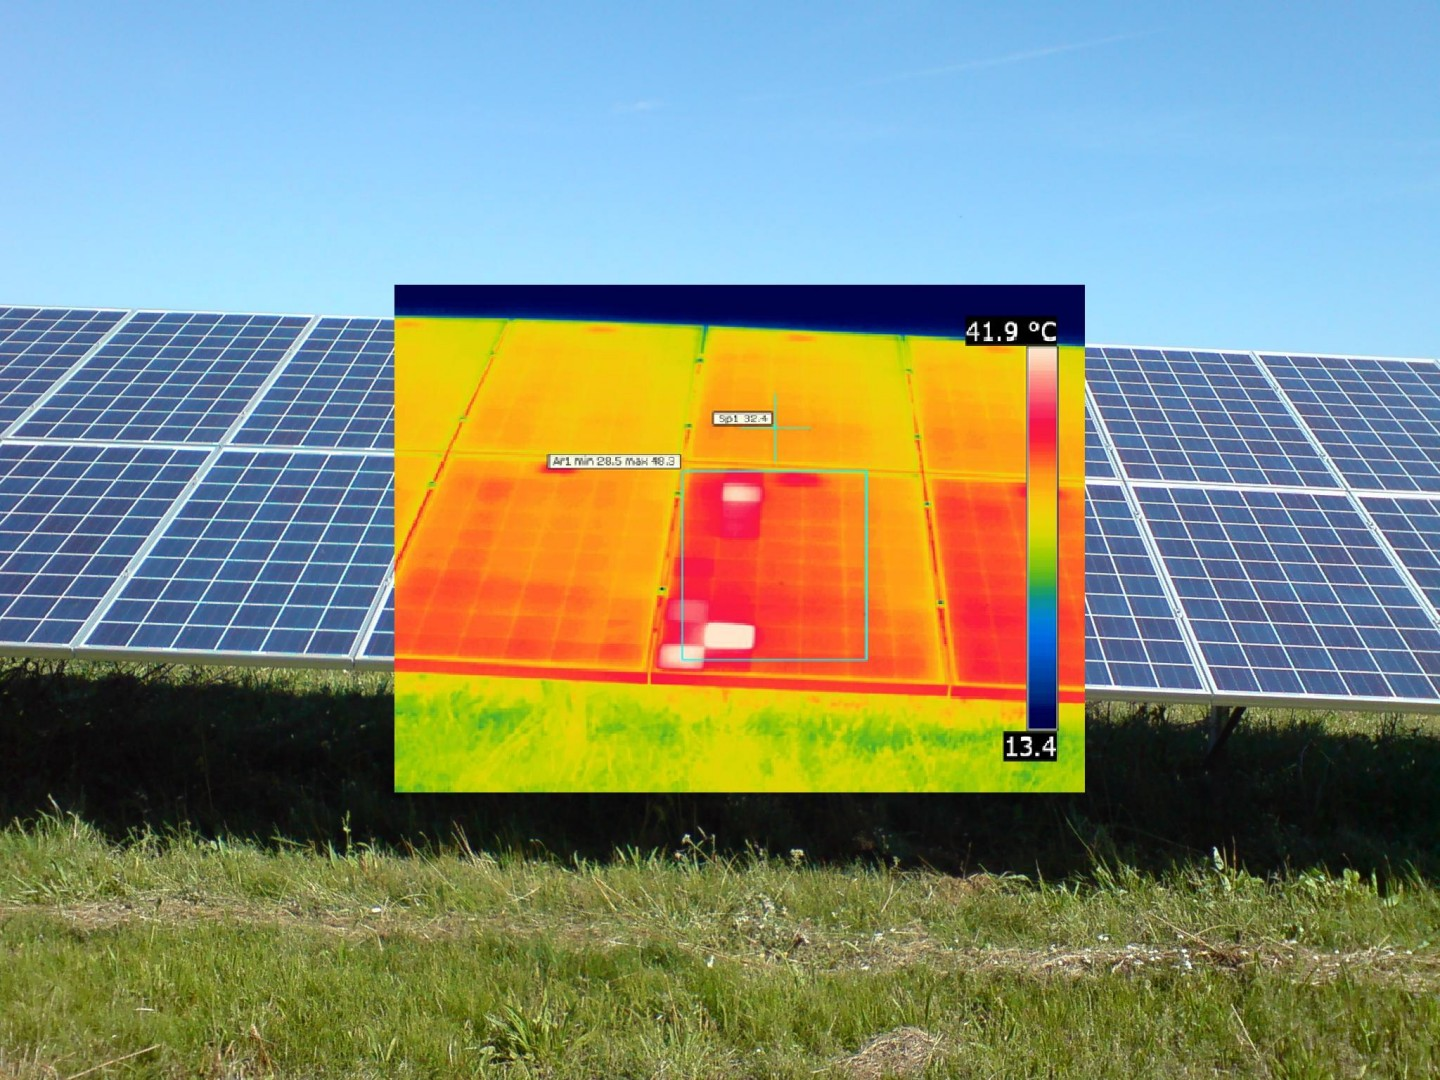 Thermographic investigation of the solar generator carried out with a high resolution IR camera.